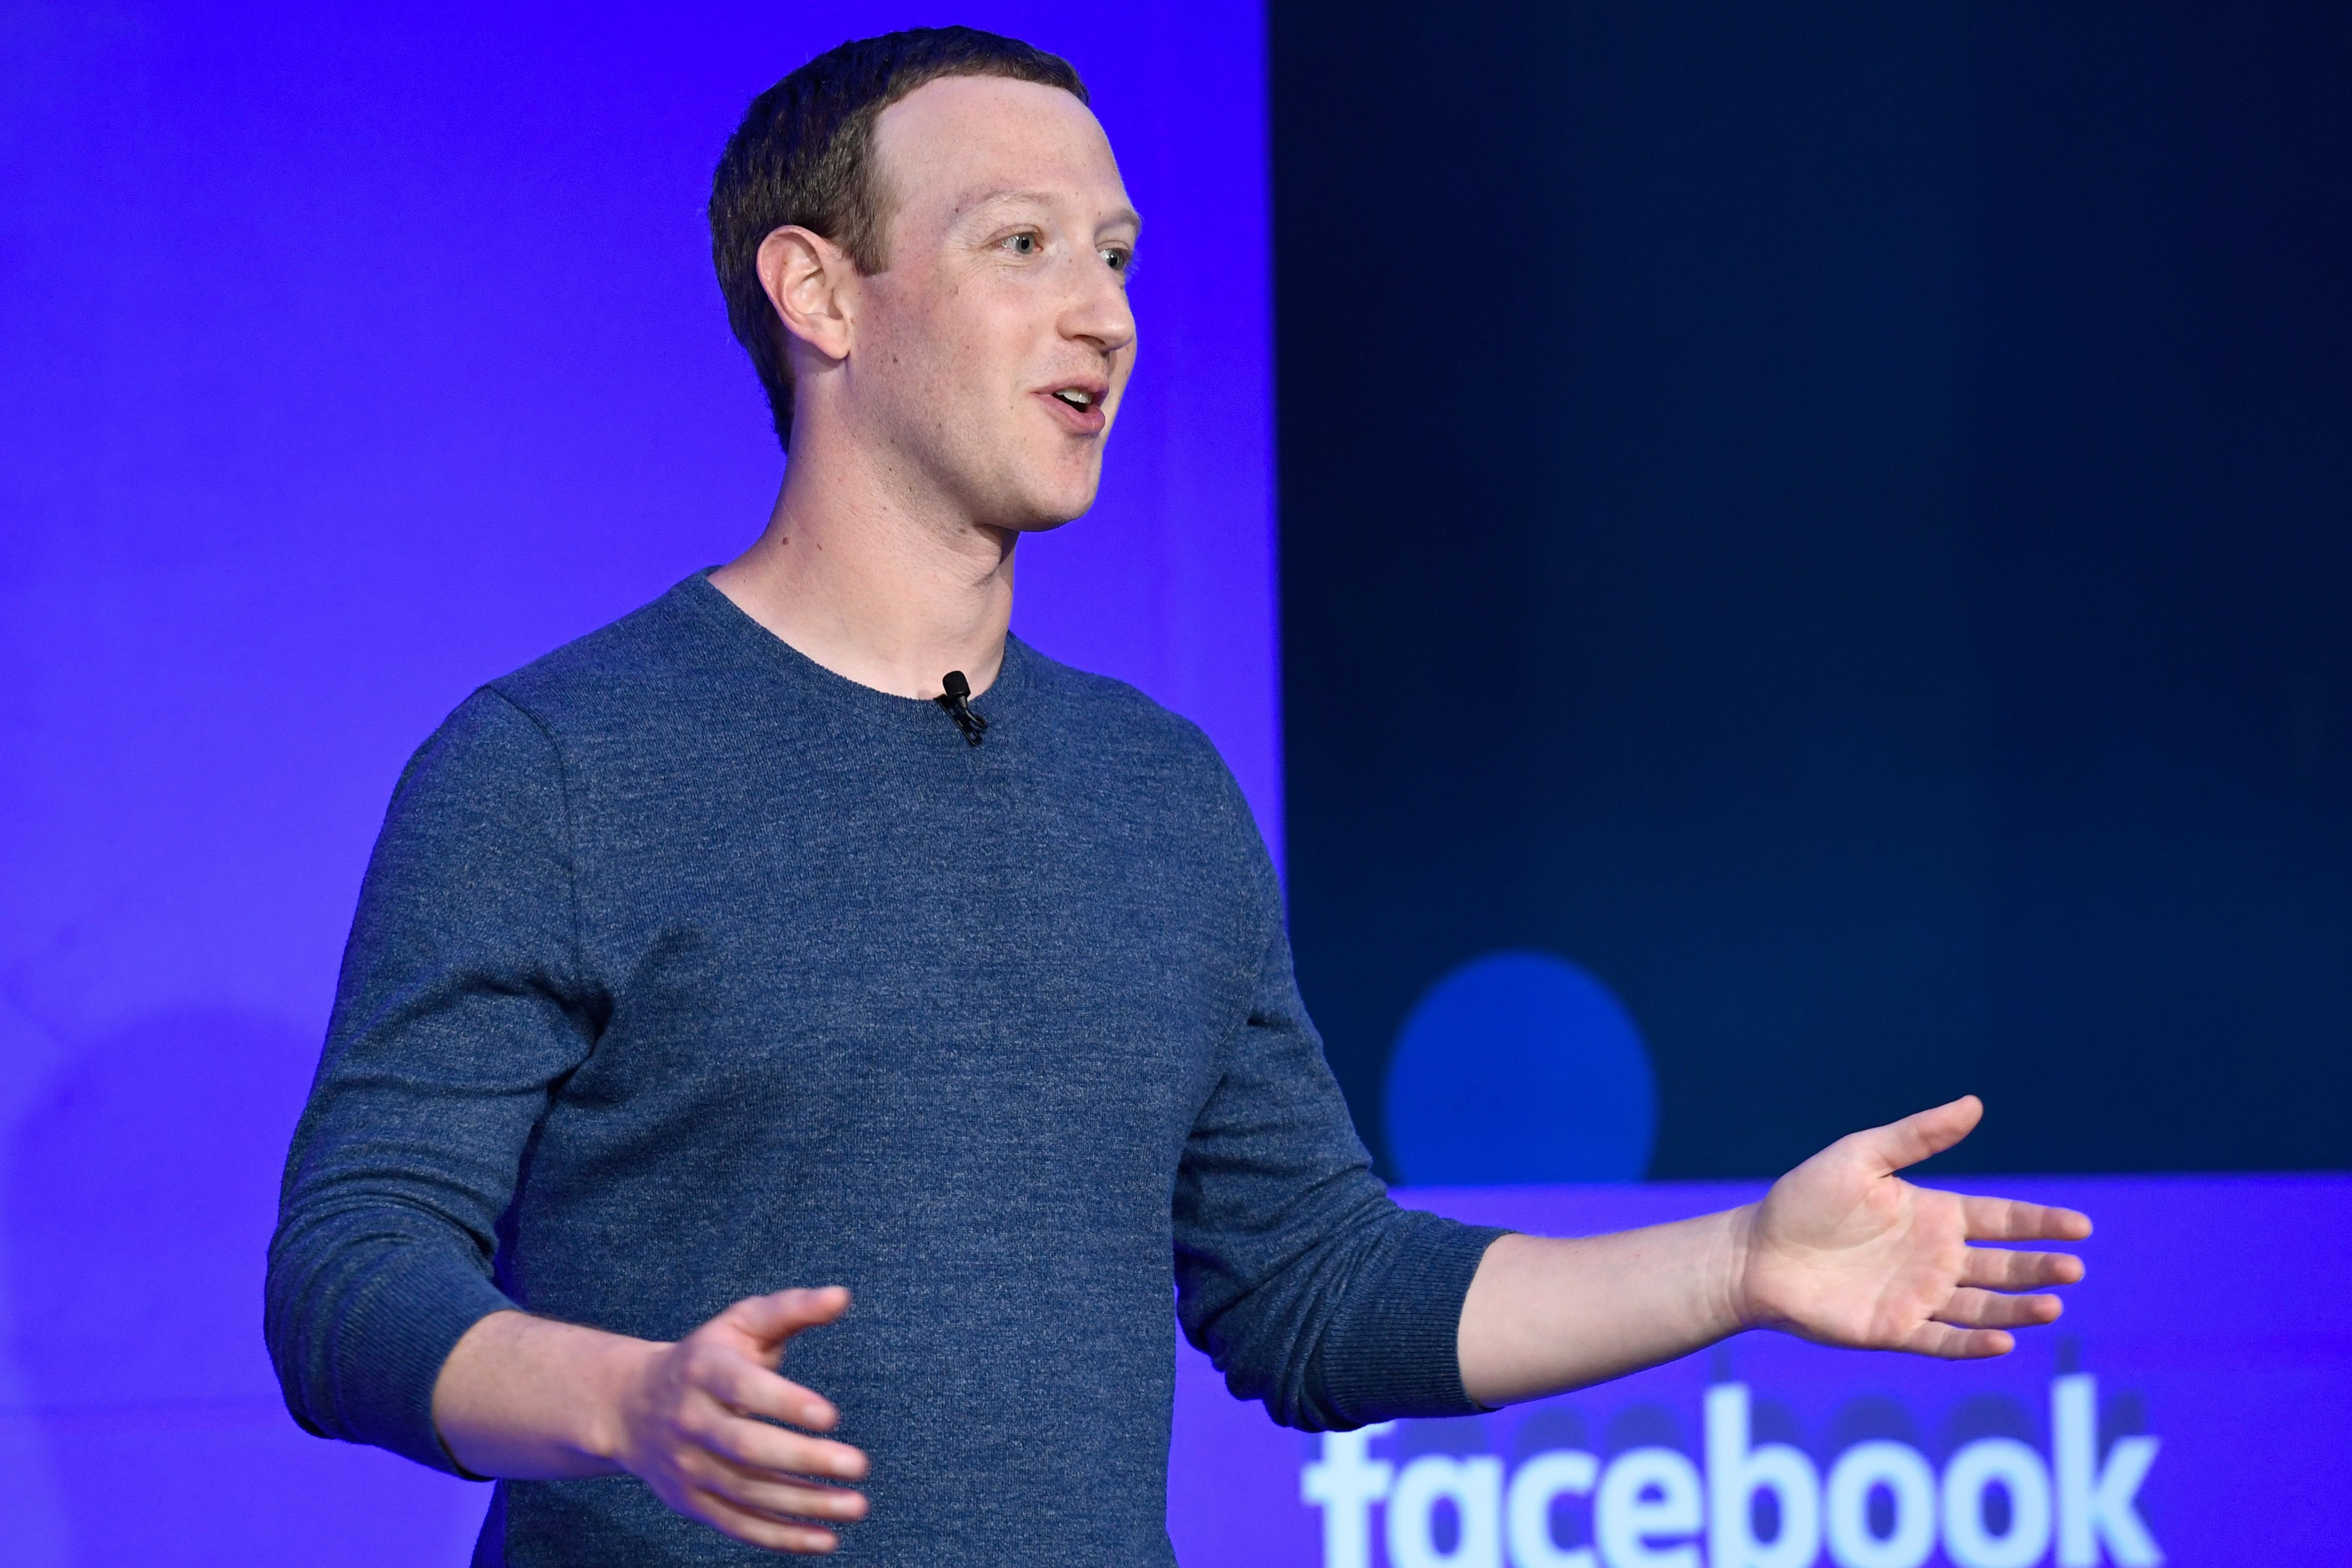 Facebook CEO Mark Zuckerberg speaks during a press conference in Paris on May 23, 2018. (BERTRAND GUAY/AFP/Getty Images)